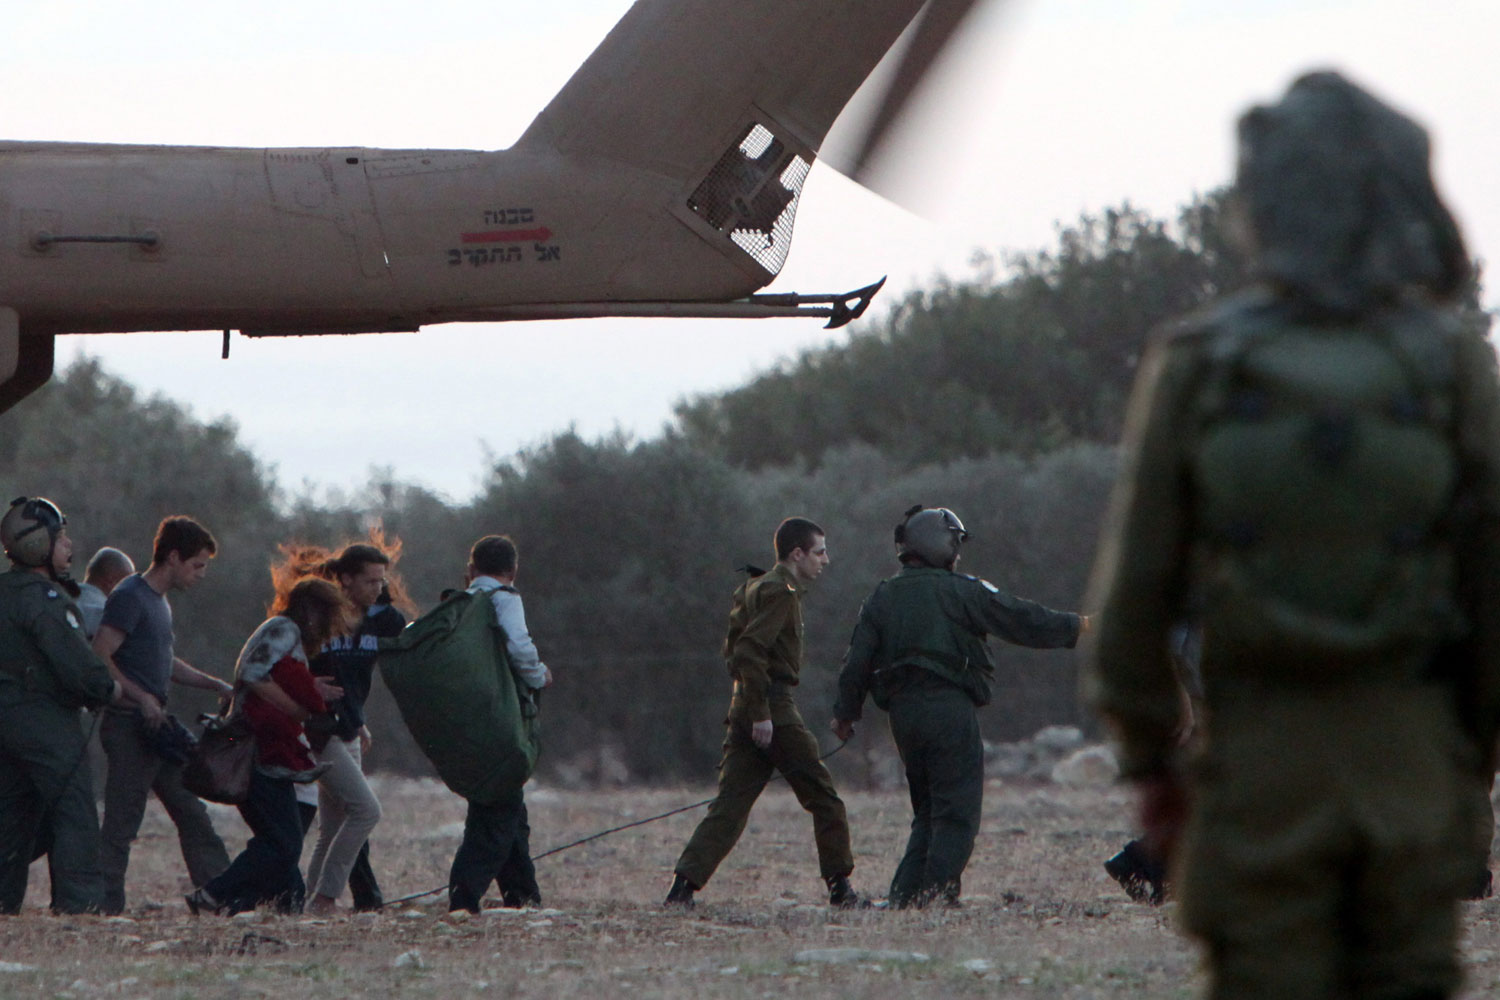 October 18, 2011. In the company of members of his family, Israeli soldier Gilad Shalit is guided from an army helicopter. After being captured by Hamas militants in 2006 and spending five years in captivity in Gaza, Shalit was freed in exchange for the release of more than 1,000 Palestinians from Israeli jails.